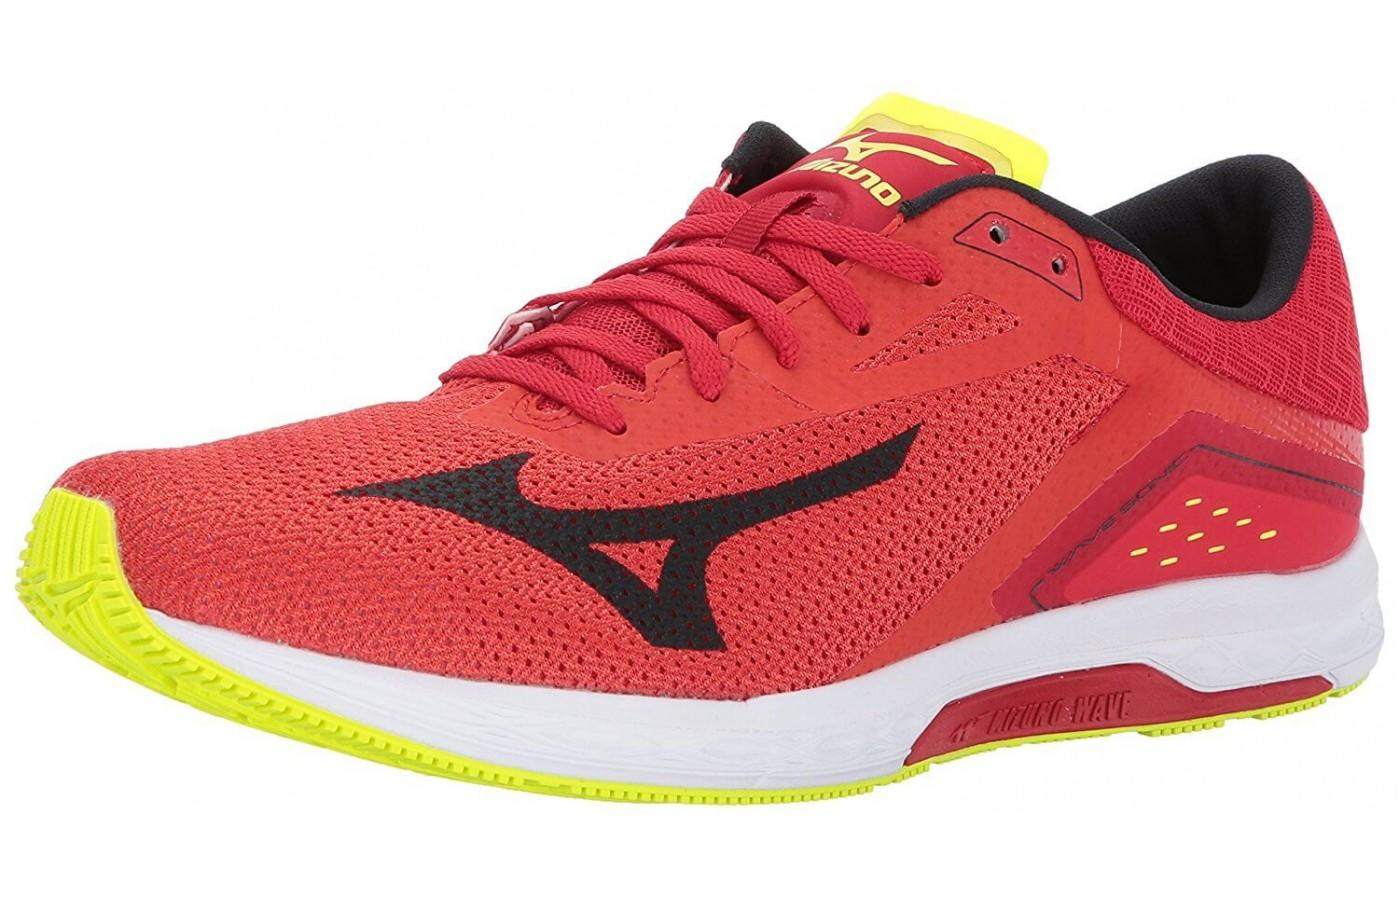 Mizuno Wave Sonic is a lightweight racing flat